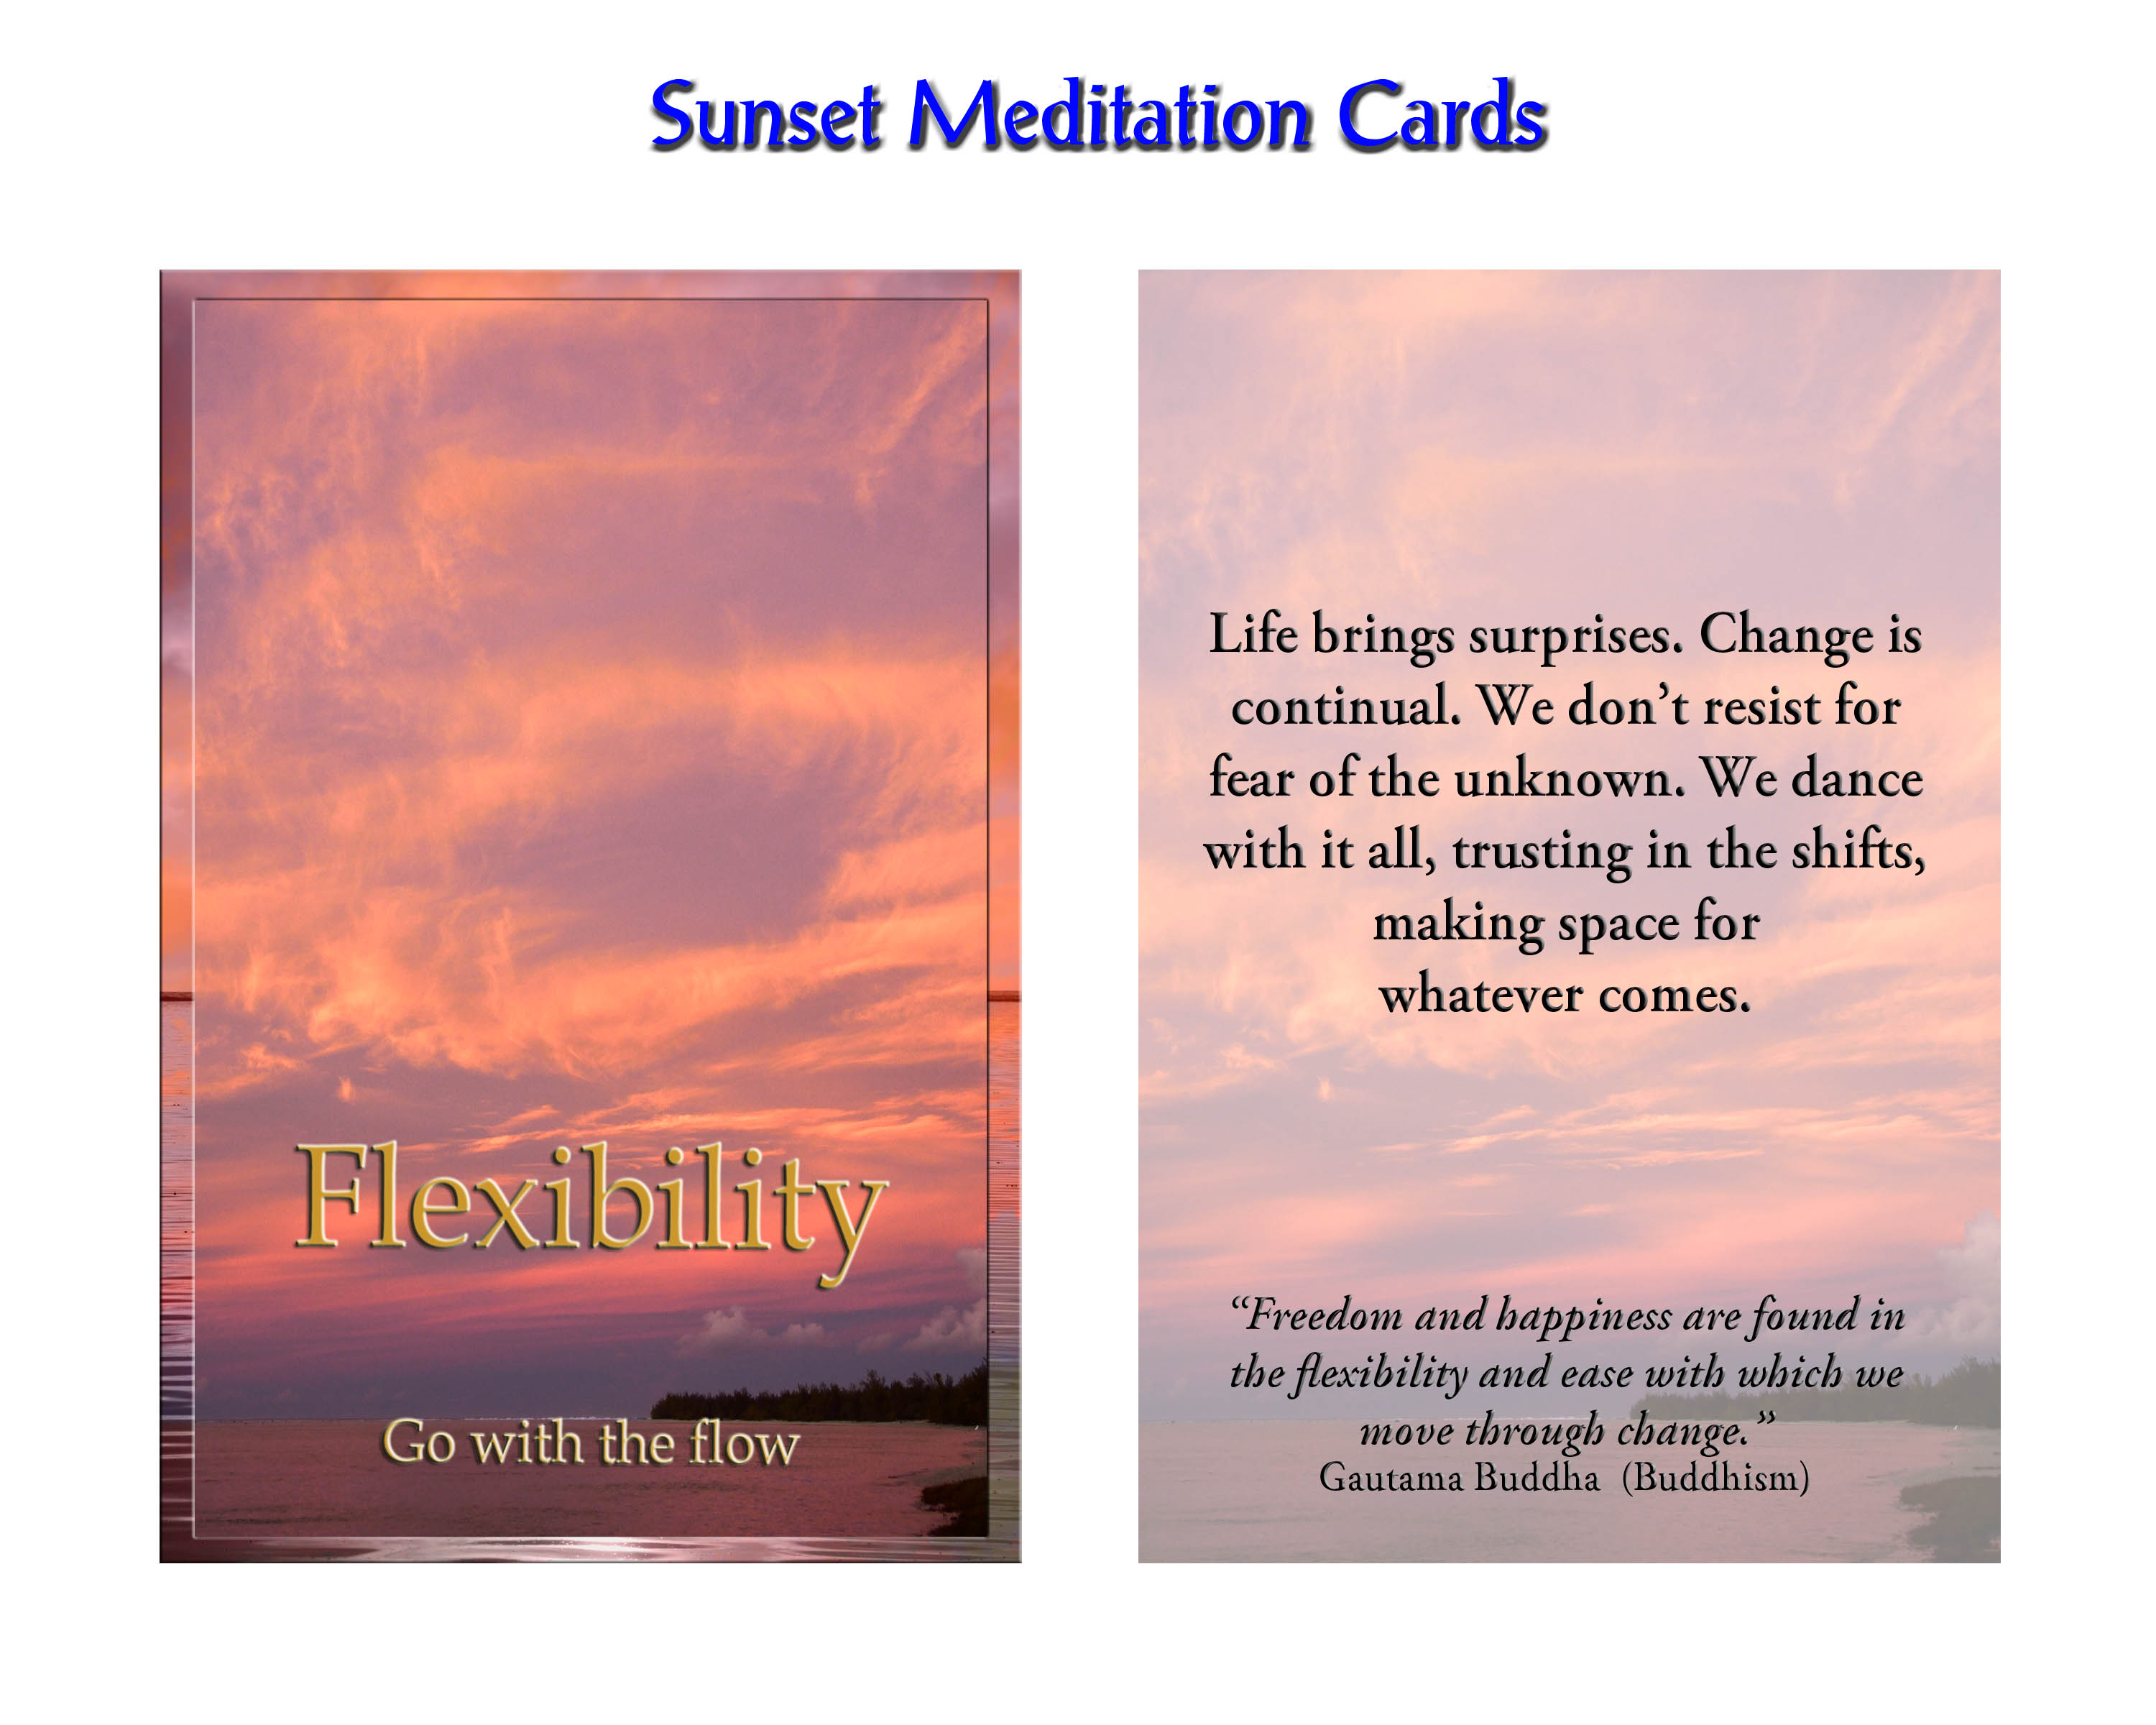 bfc8d56652b Sunset Meditations available at www.virtuesshop.com